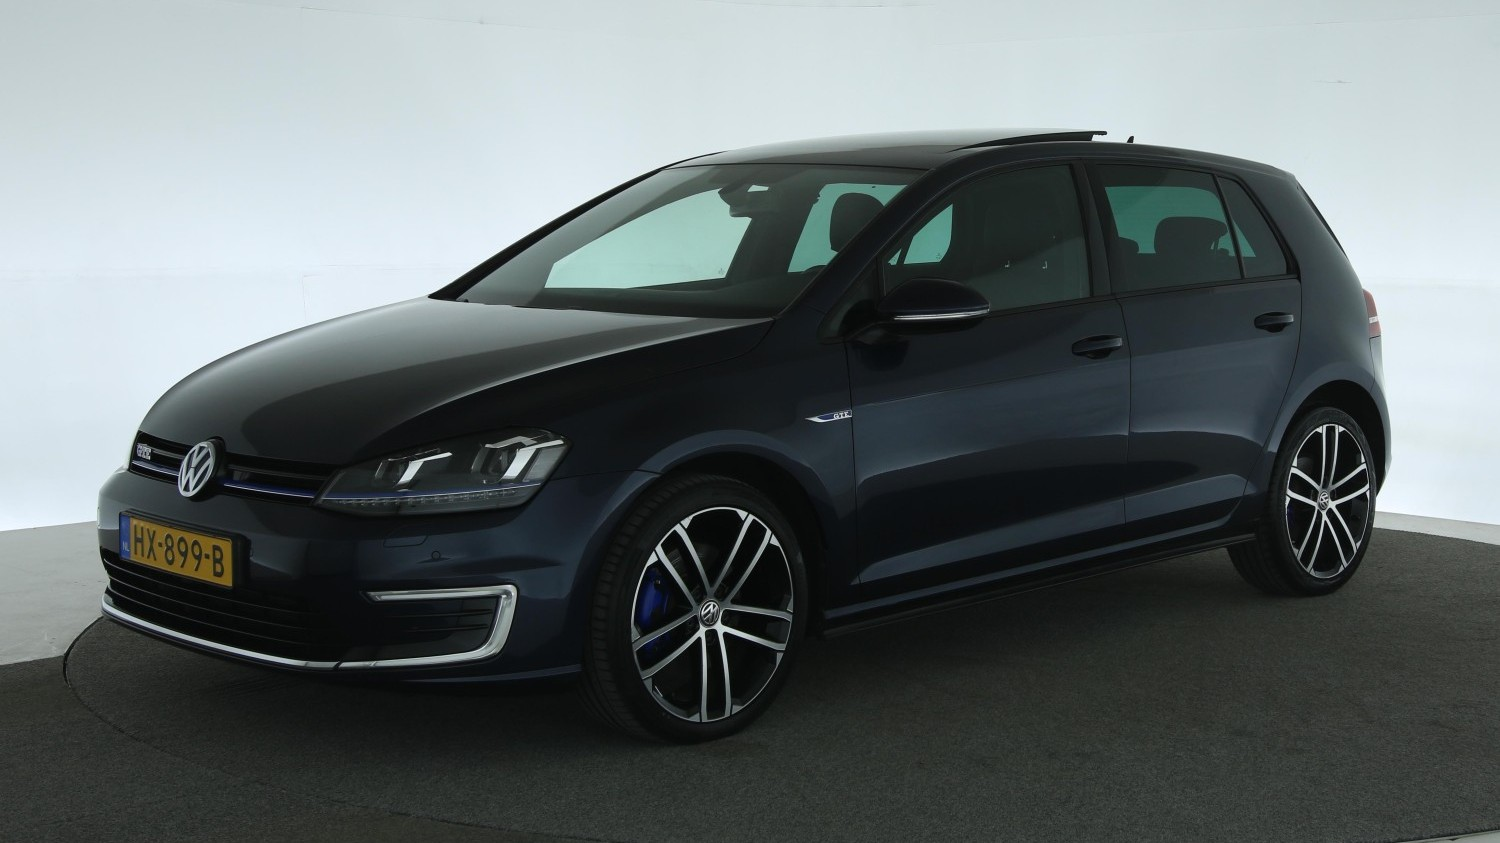 Volkswagen Golf Hatchback 2015 HX-899-B 1